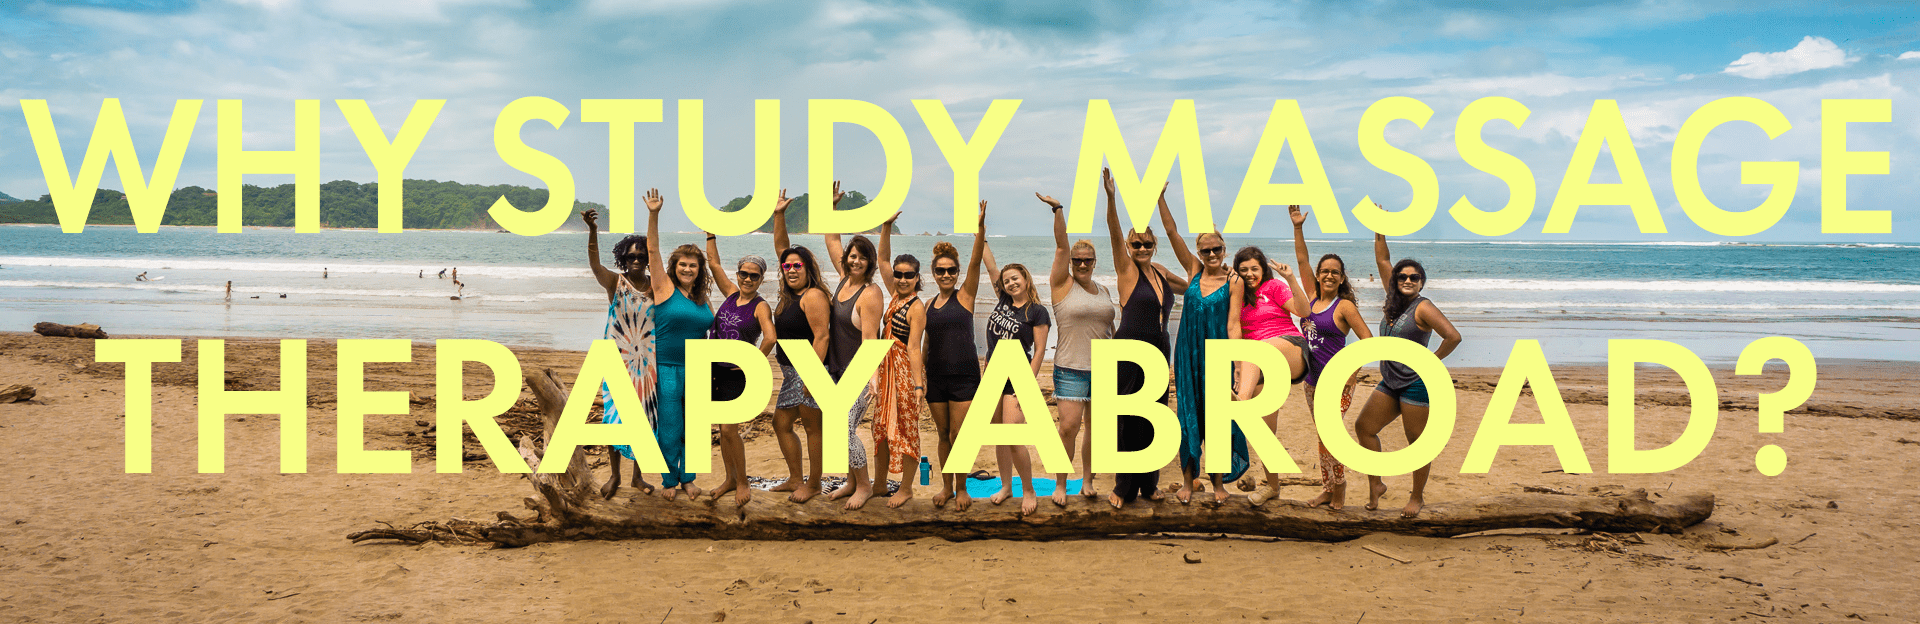 why study massage therapy abroad